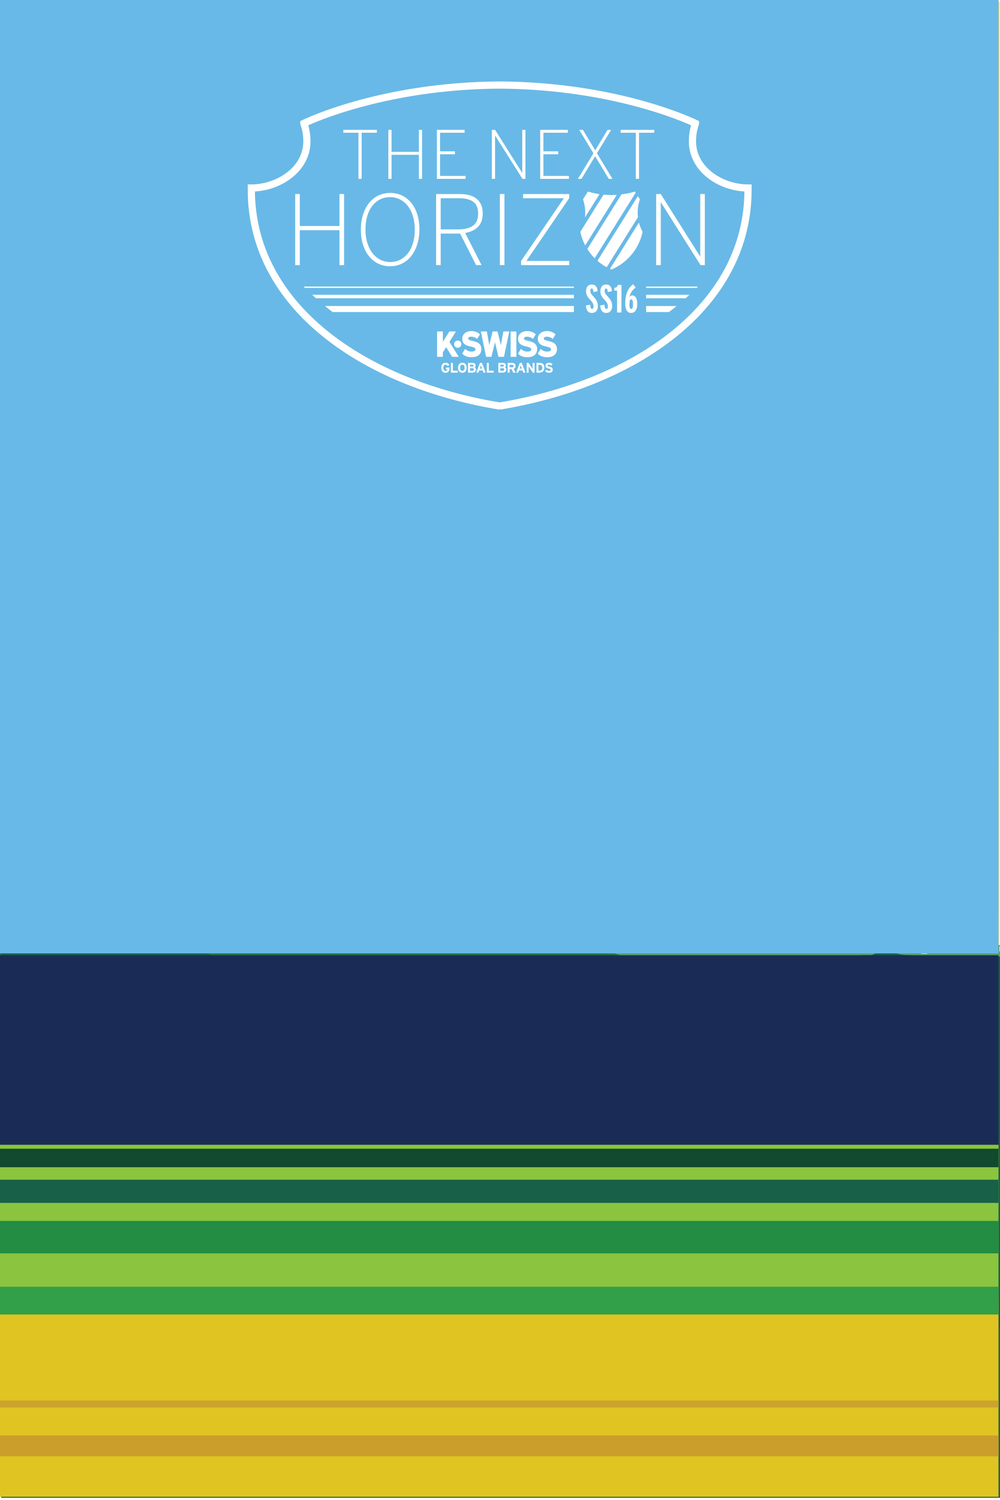 kswiss-poster4.png